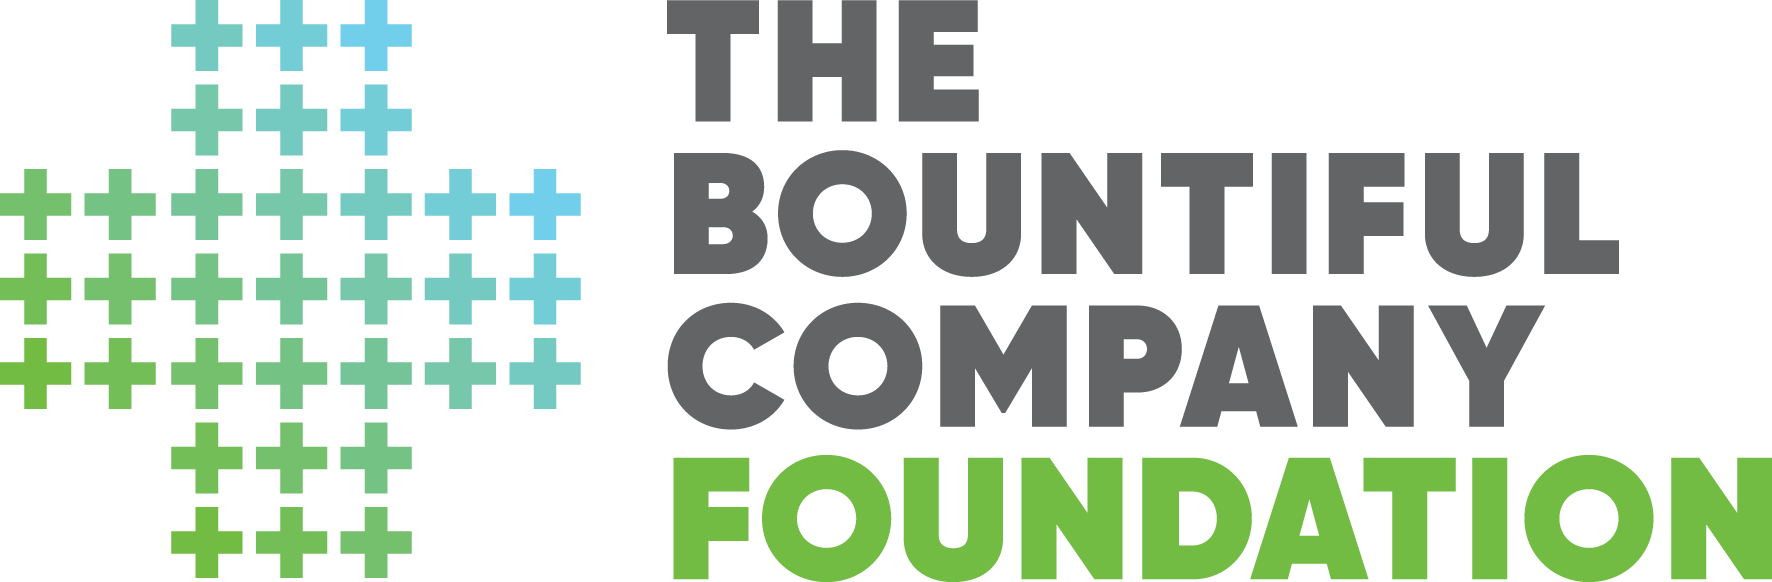 The Bountiful Company foundation